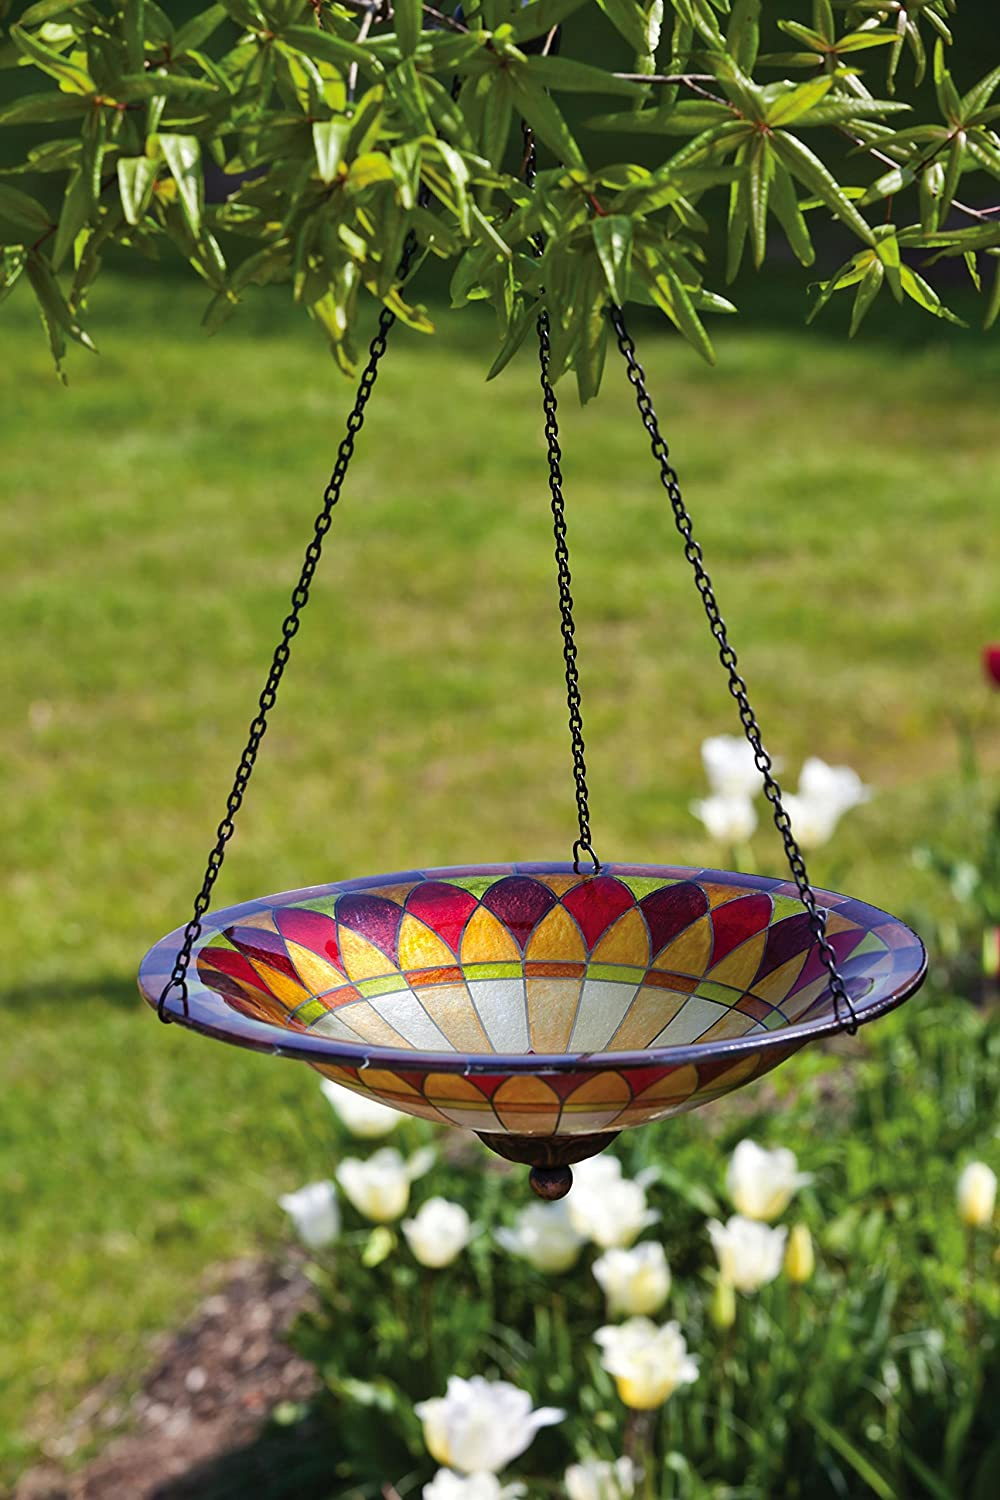 Evergreen Tiffany-Inspired Hanging Glass Bird Bath Bowl